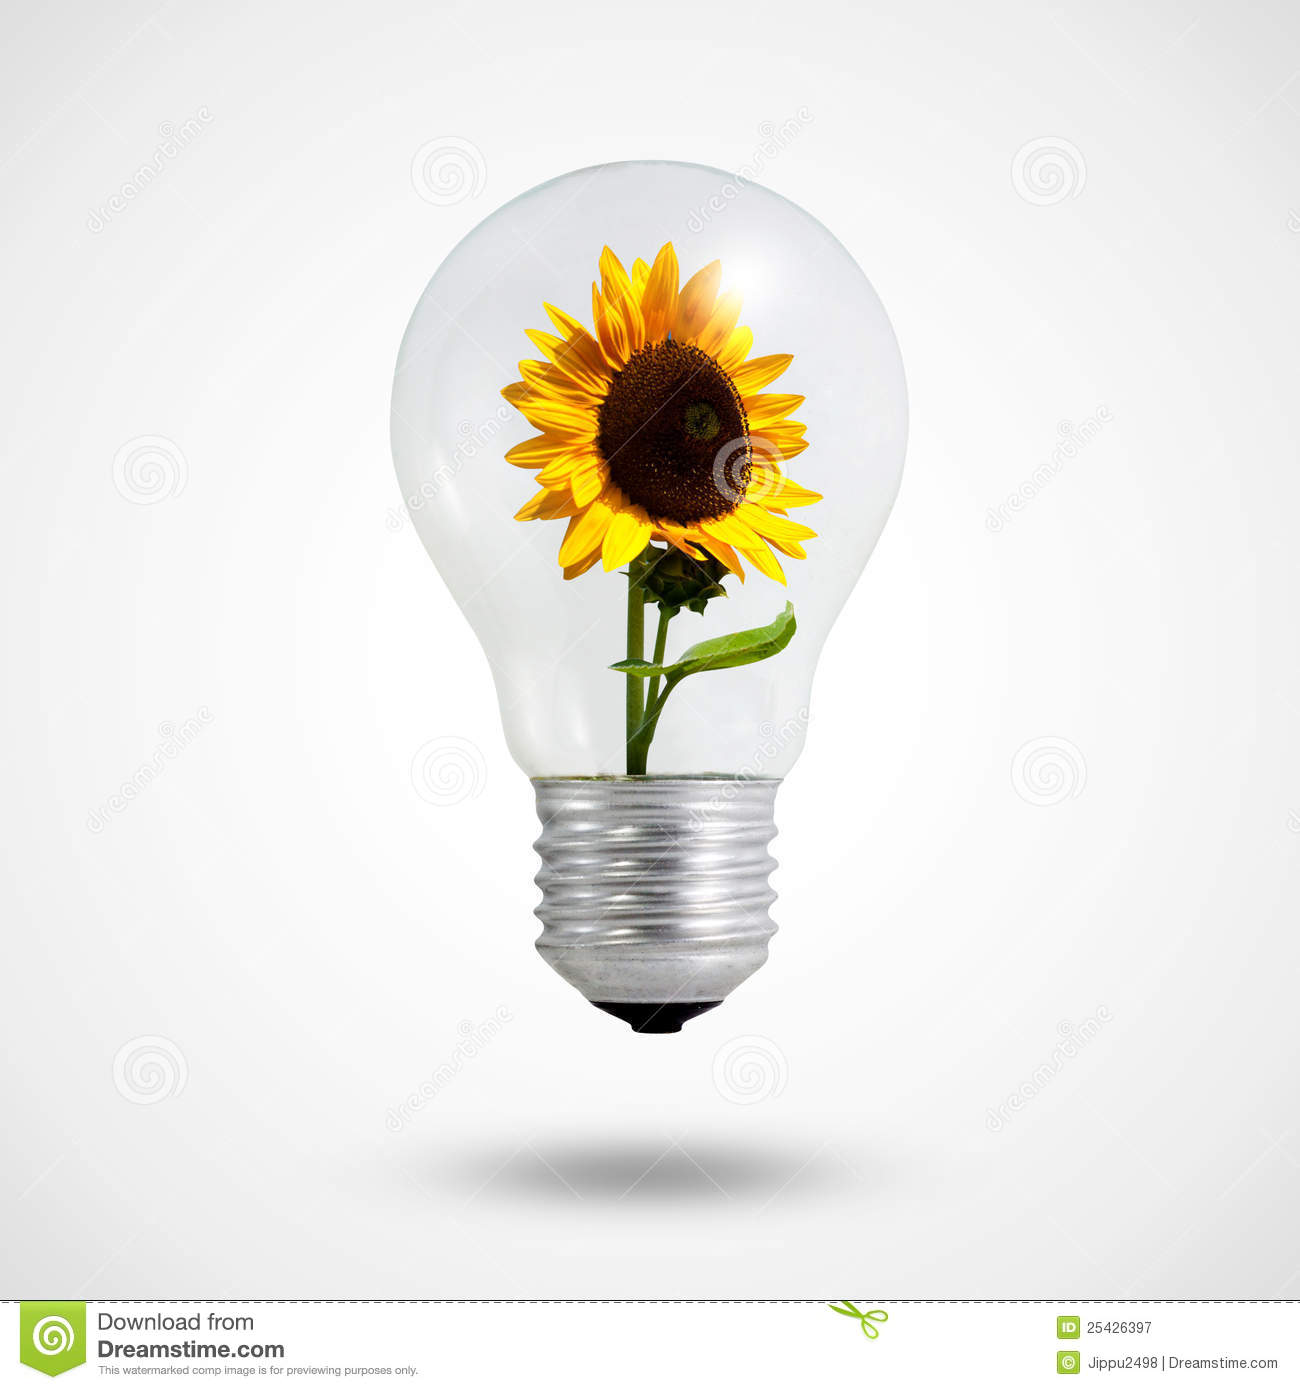 Eco concept: light bulbs with Sunflower inside